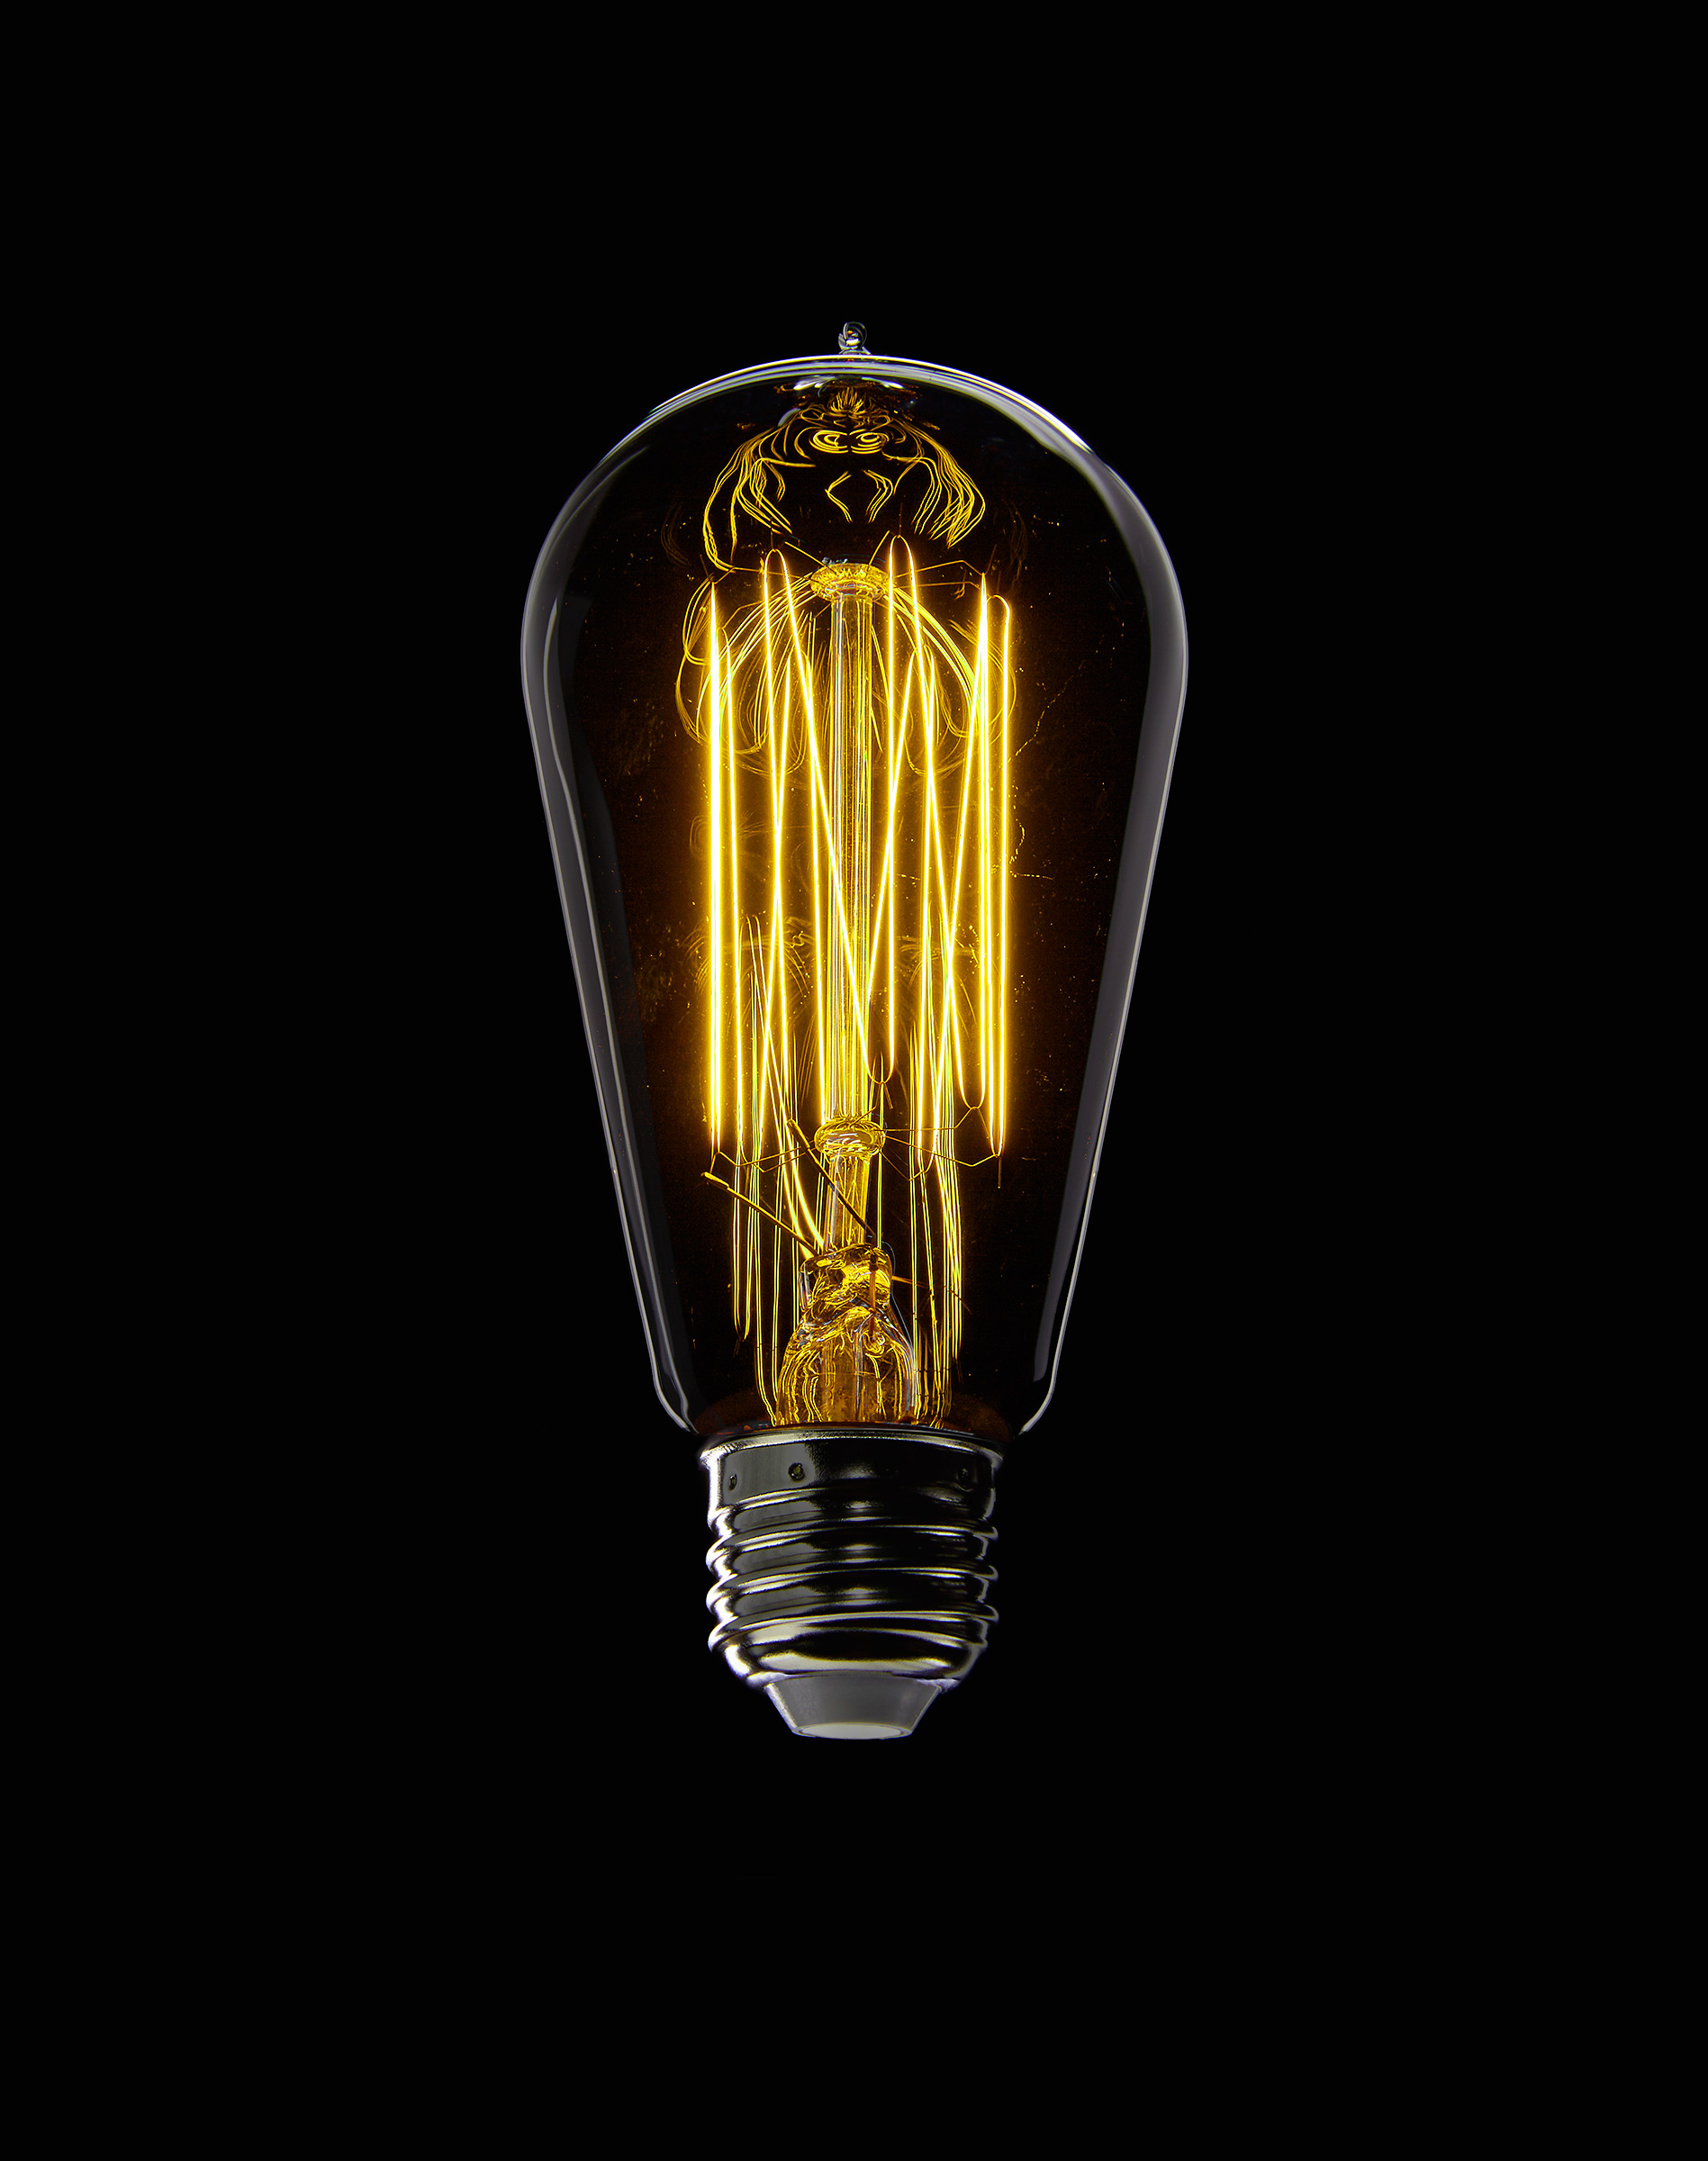 SueTallon_WB2_Lightbulb_0035_Maslov